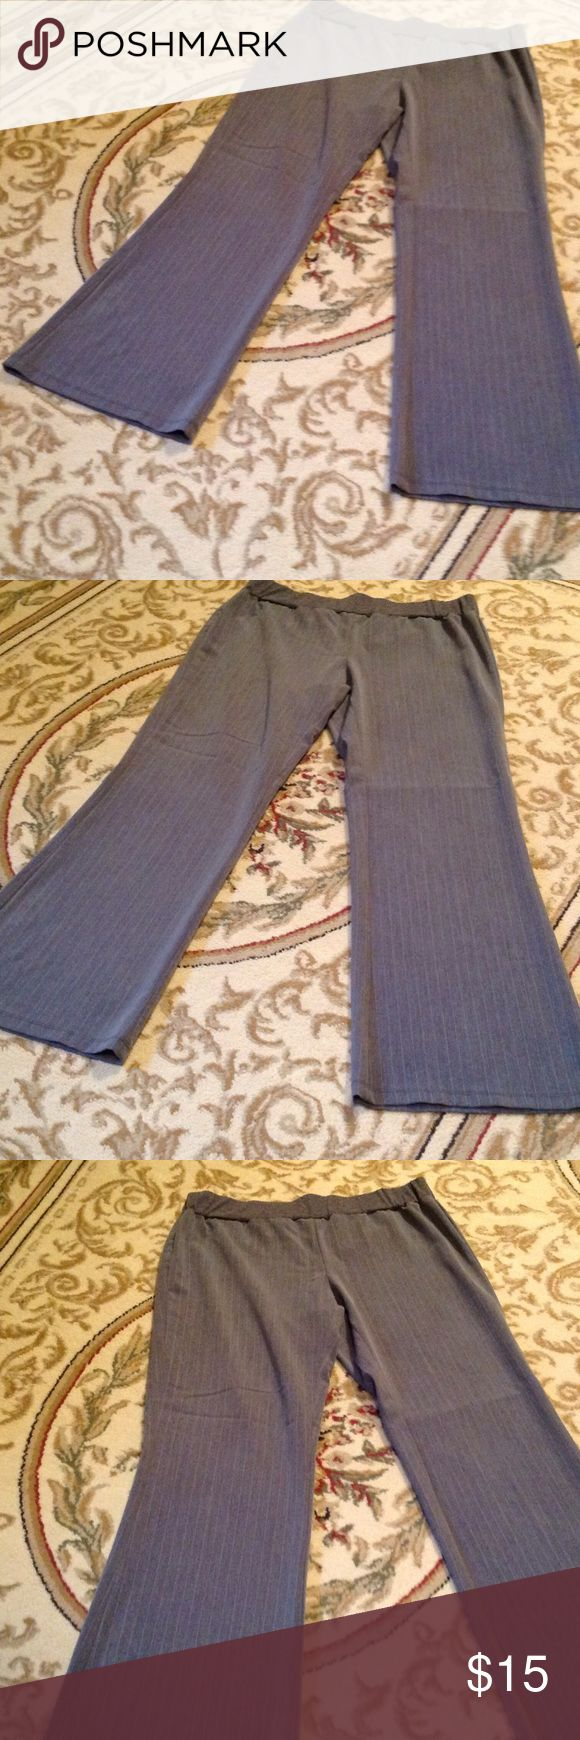 """Ladies size large pinstripe maternity pants Cute pinstripe gray & pink maternity pants in size large. Pull on design. Flared leg. In very good preowned condition. Measurements are as follows: waist 34"""", hips 46"""", waist to floor 38"""", inseam 30"""". b sport Pants Trousers"""